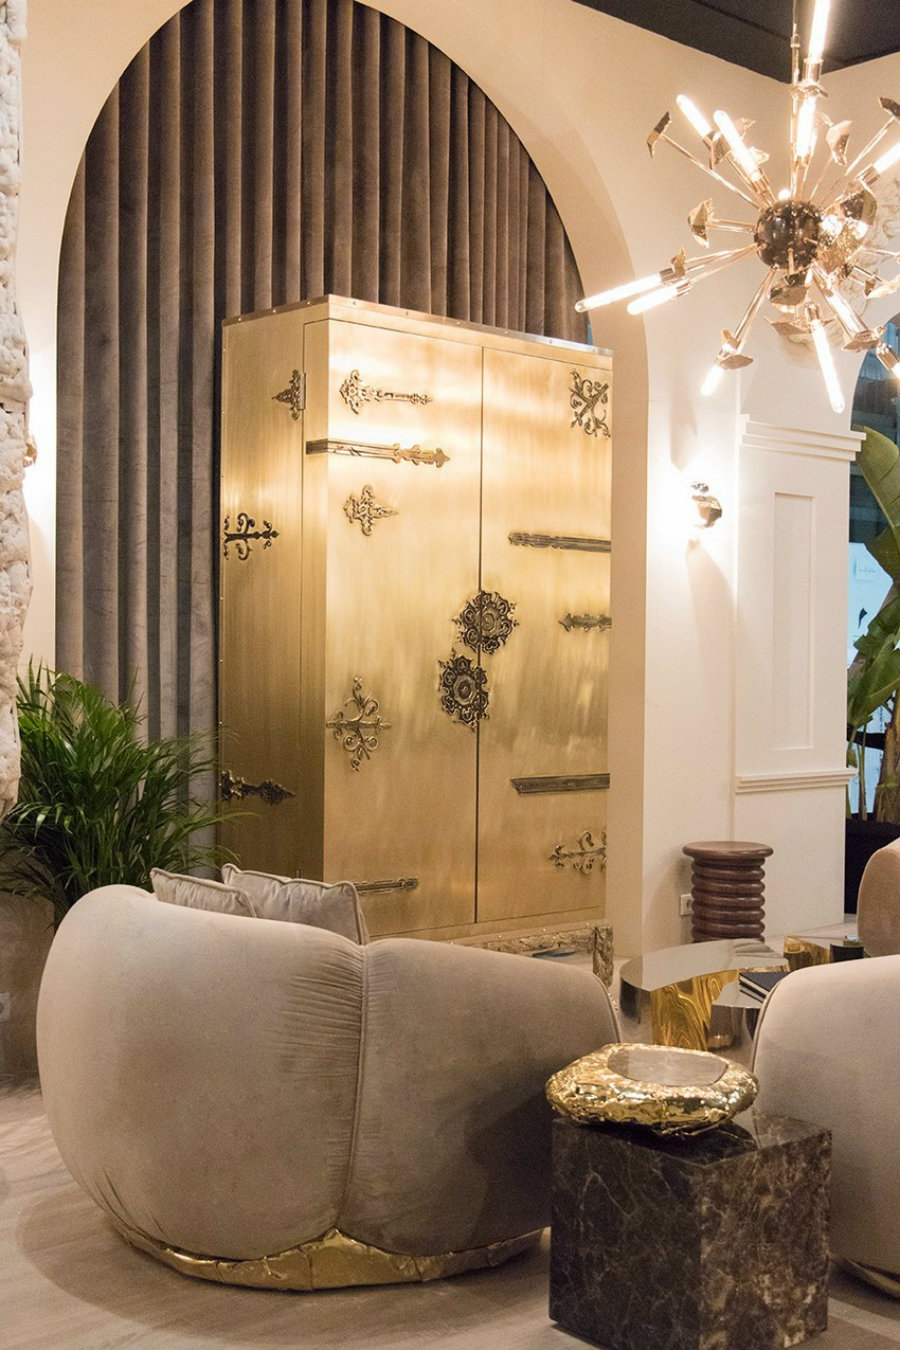 MAISON ET OBJET : A LOOK INTO SOME OF THE NEW PIECES maison et objet MAISON ET OBJET : A LOOK INTO SOME OF THE NEW PIECES savage bar cabinet